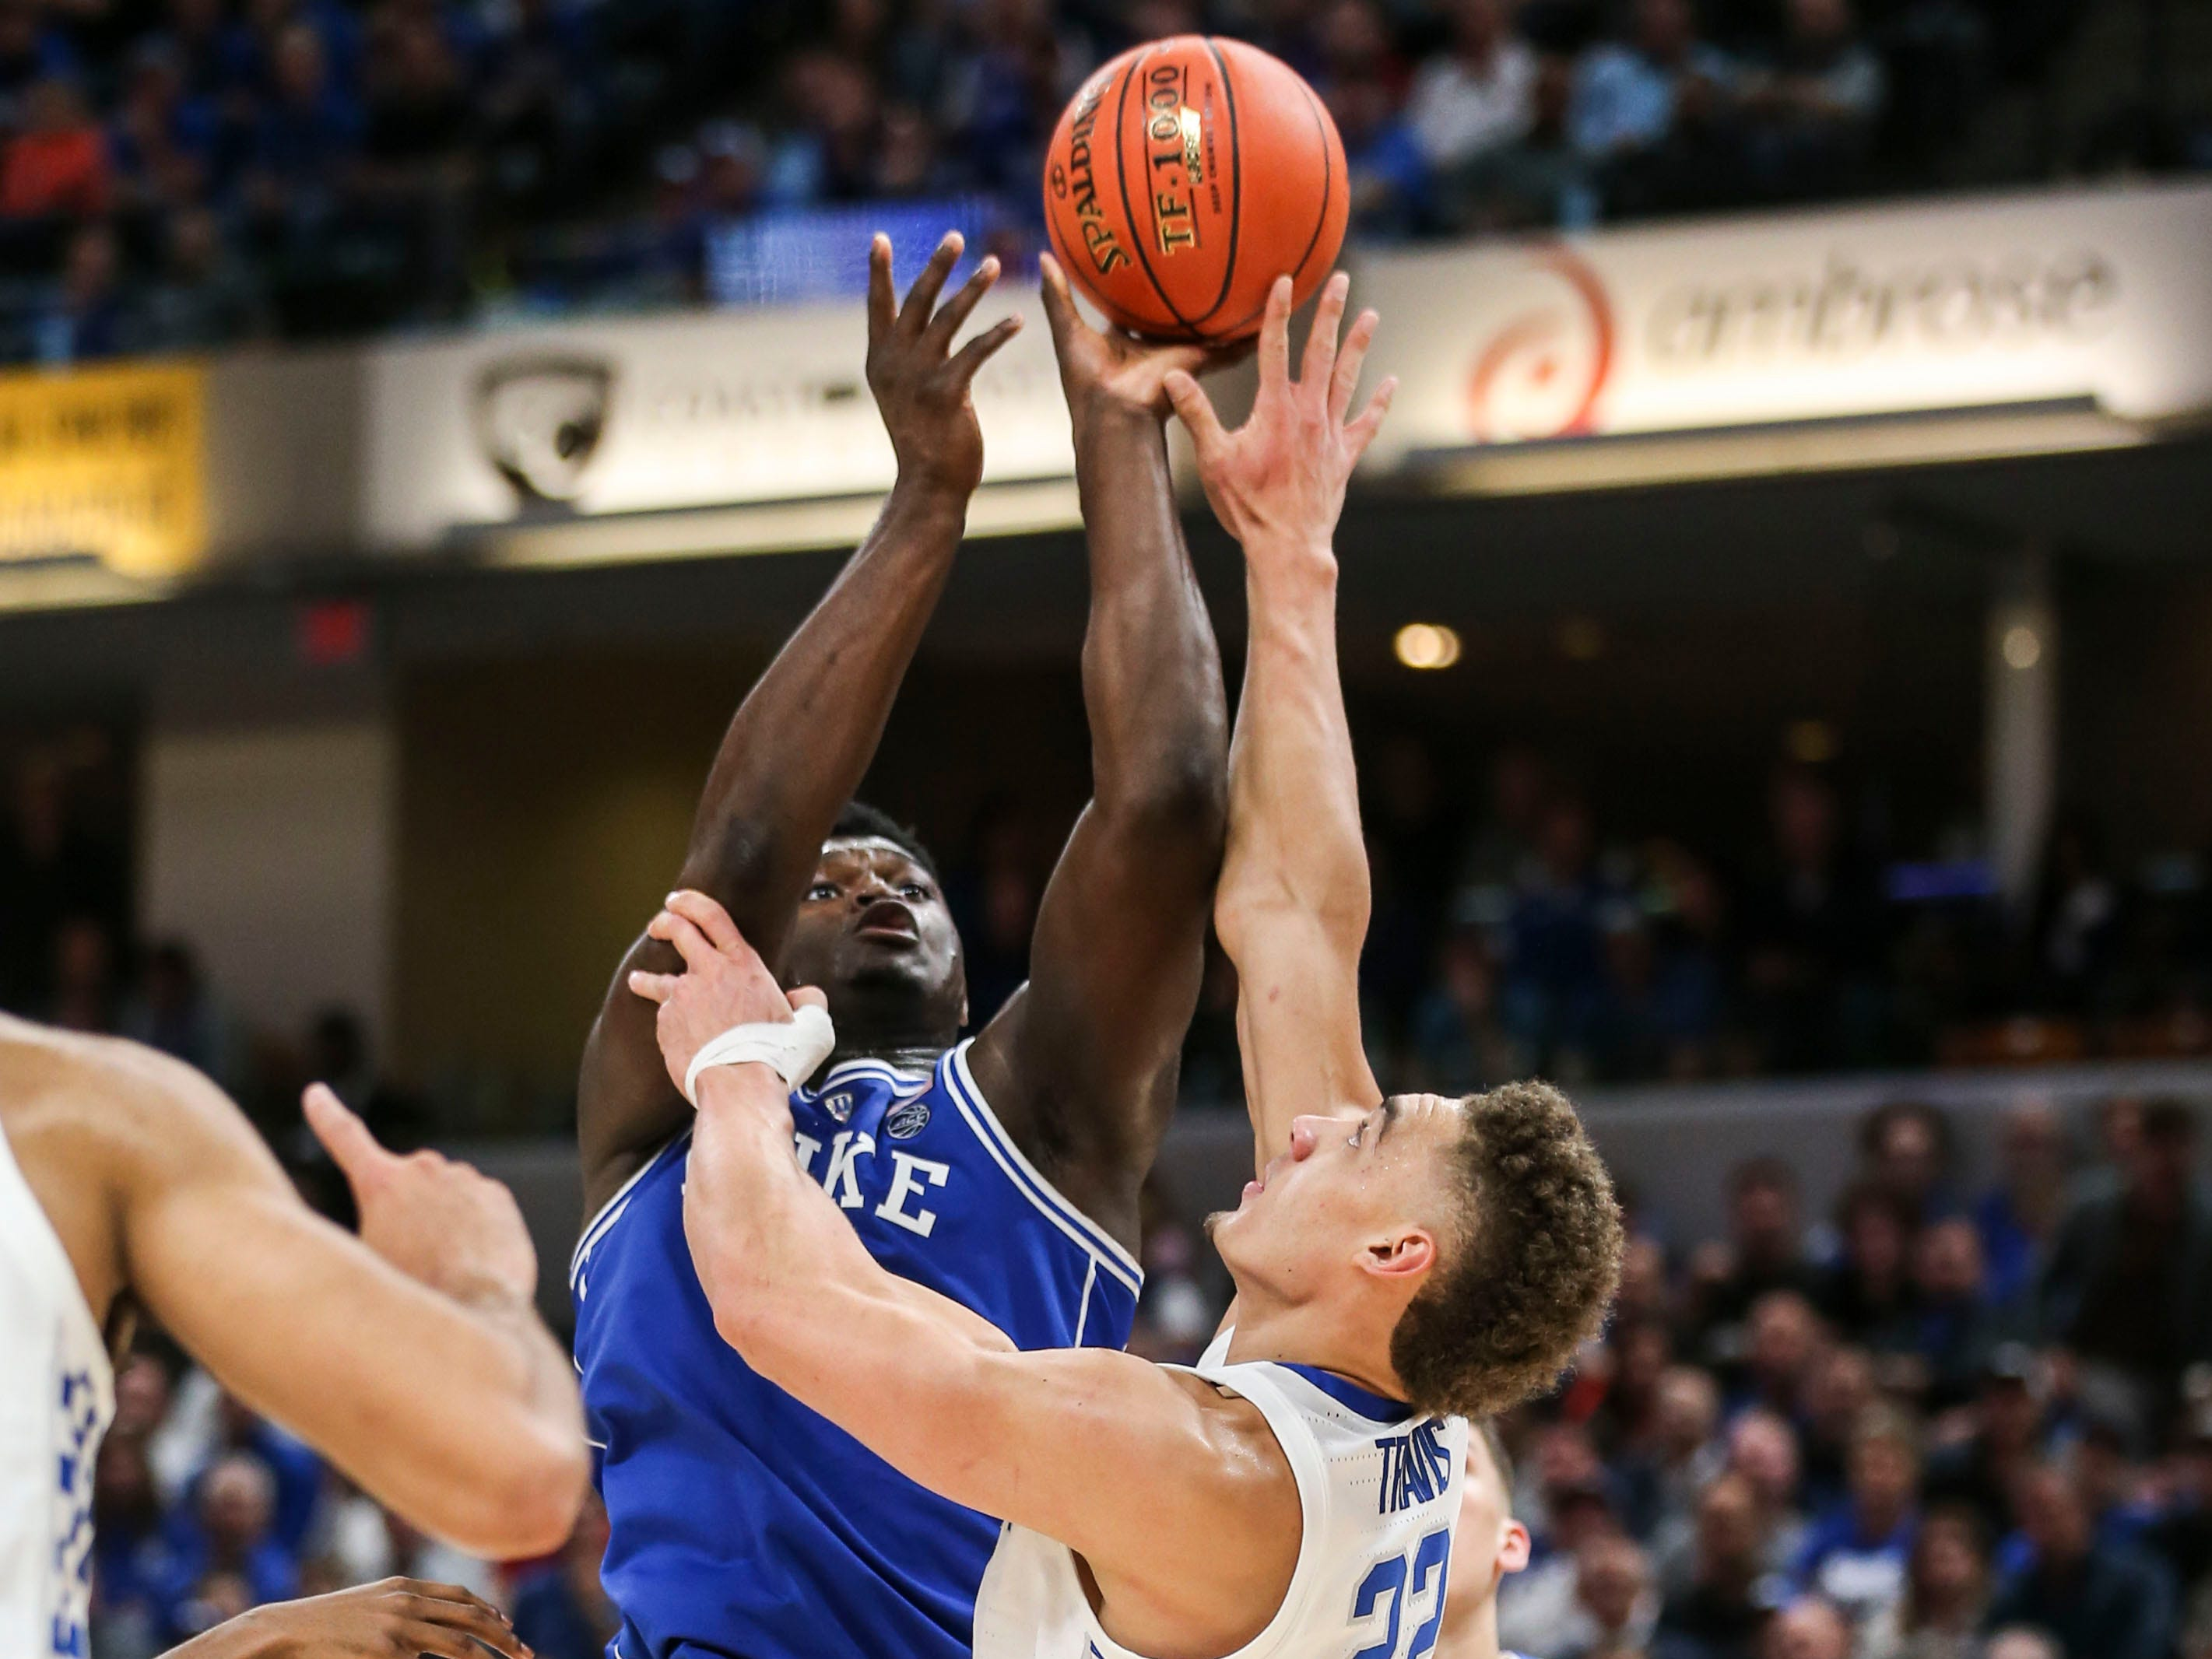 Duke's Zion Williamson scores two of his  28 points over Kentucky's Reid Travis as the Blue Devils cruised past Kentucky 118-84 in the Champions Classic Tuesday night. Nov. 6, 2018